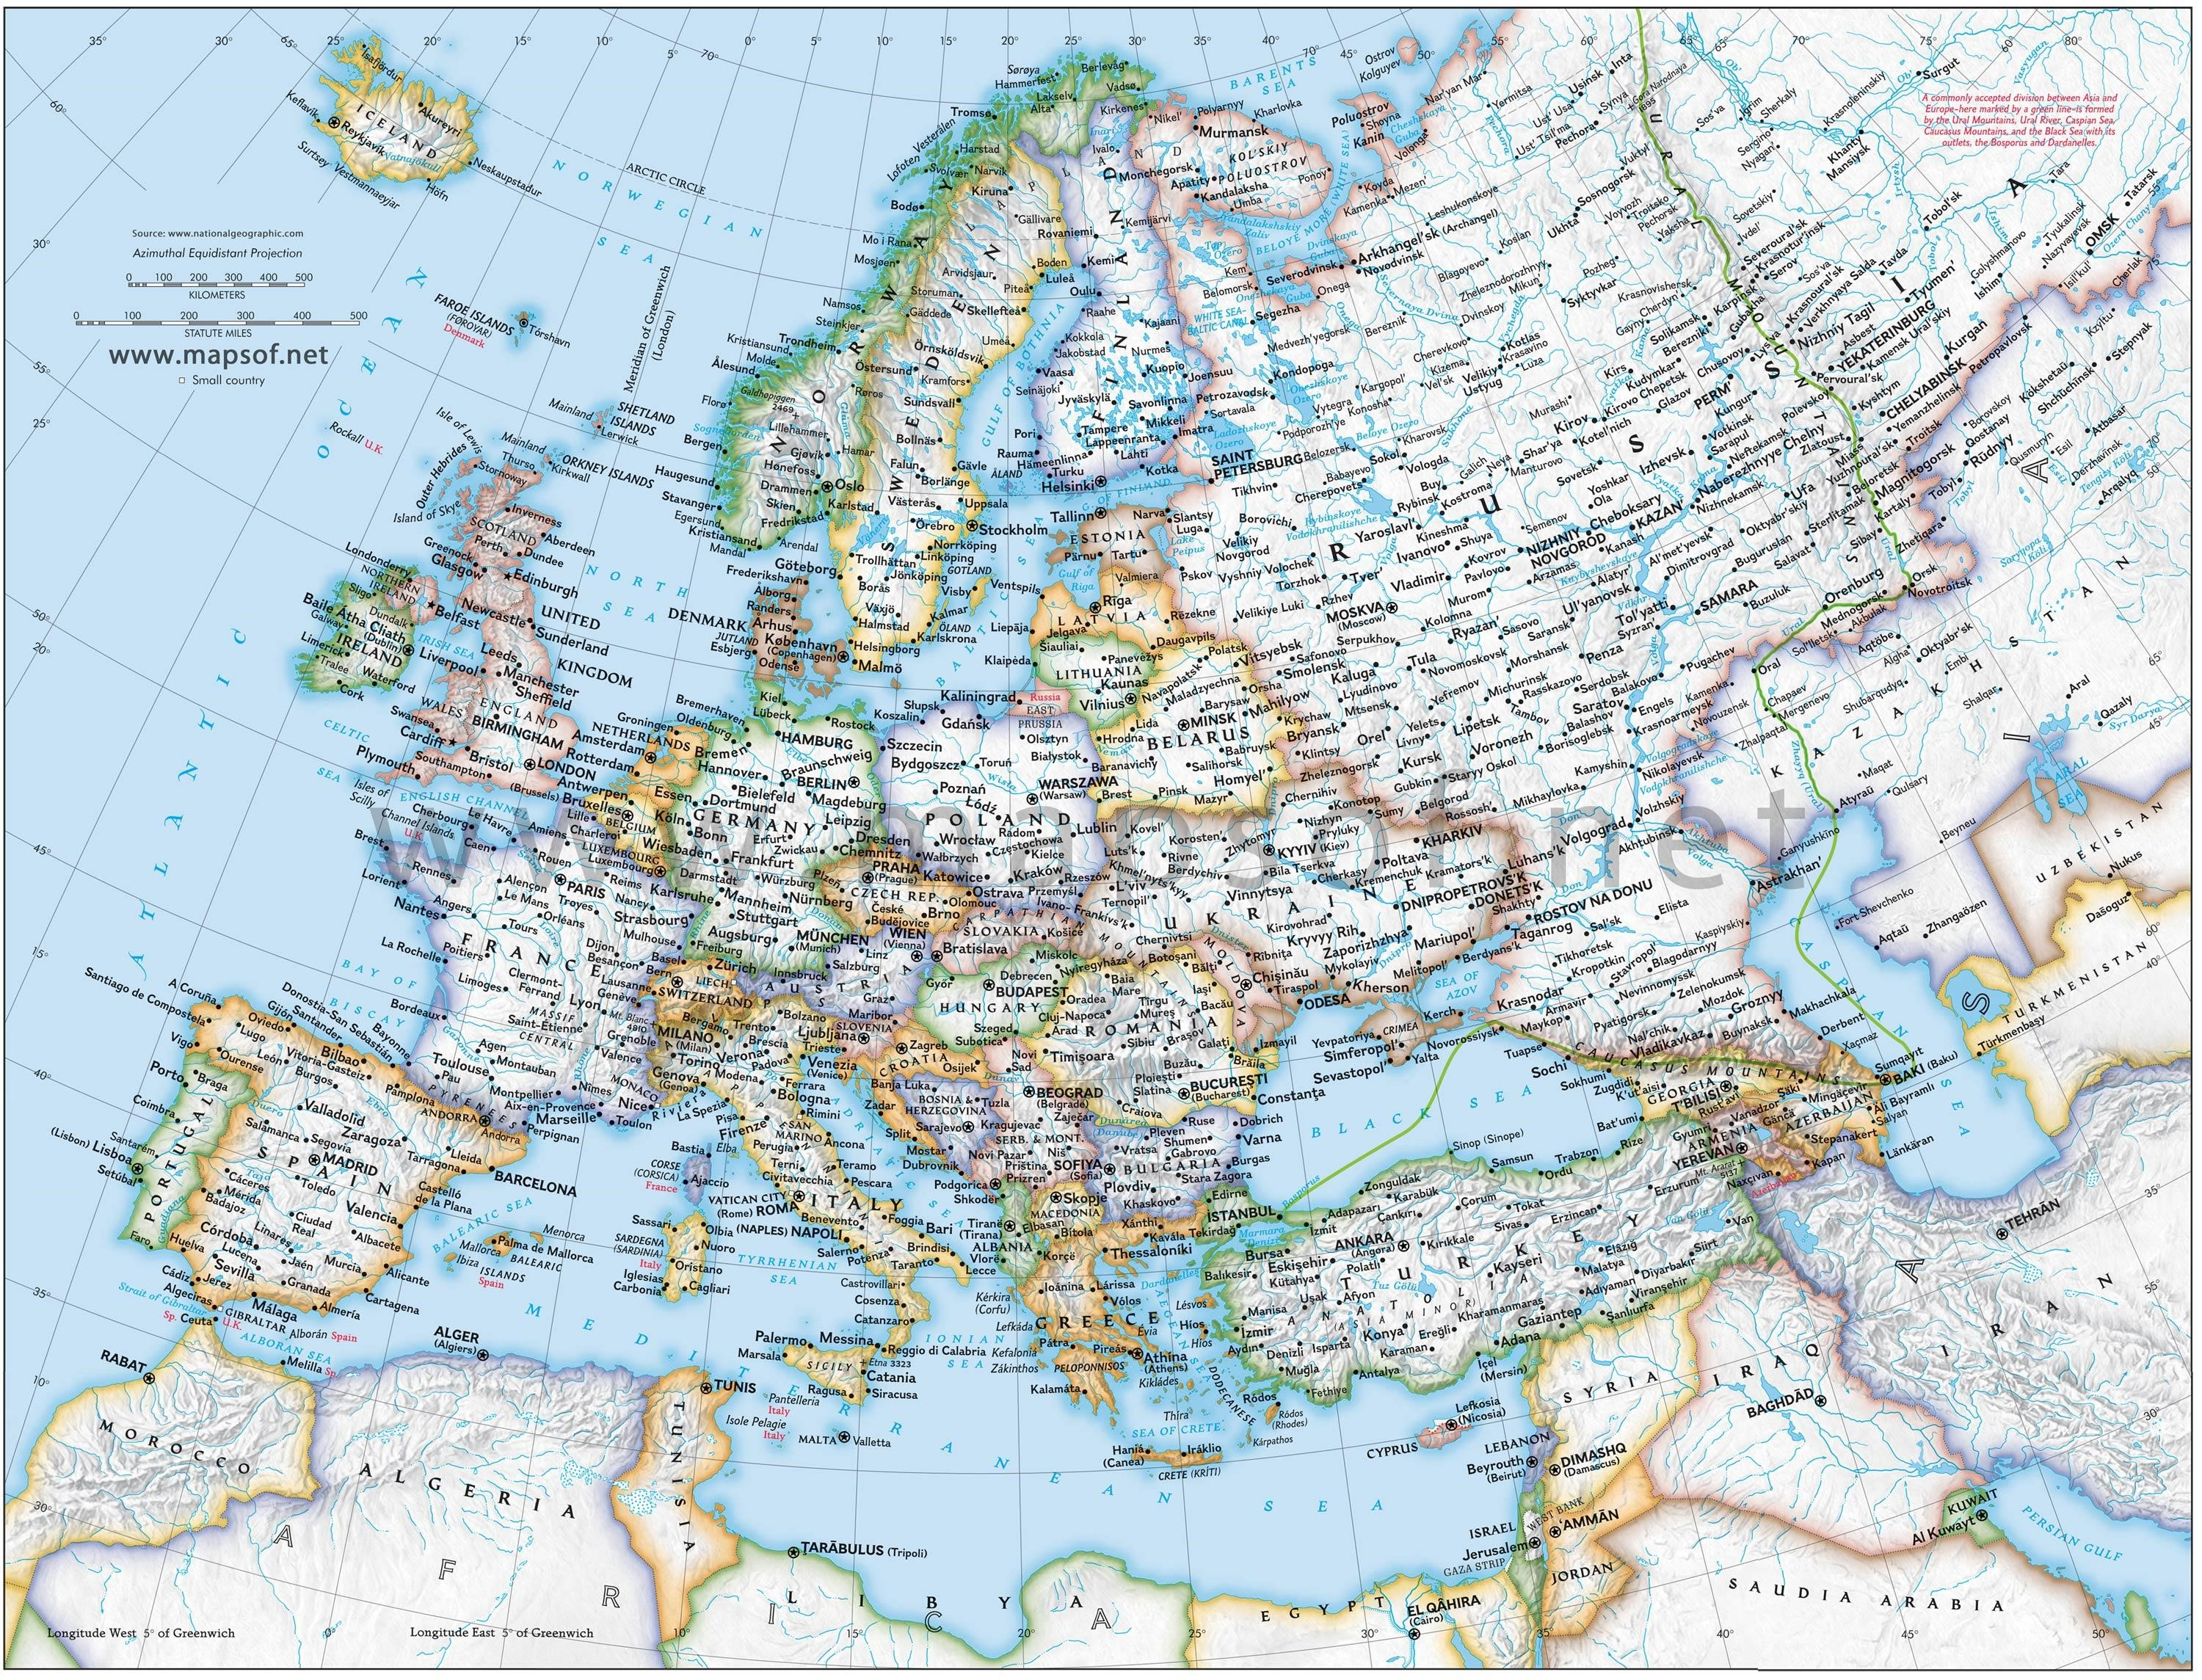 Europepoliticalmapjpg – Detailed Travel Map Of Europe